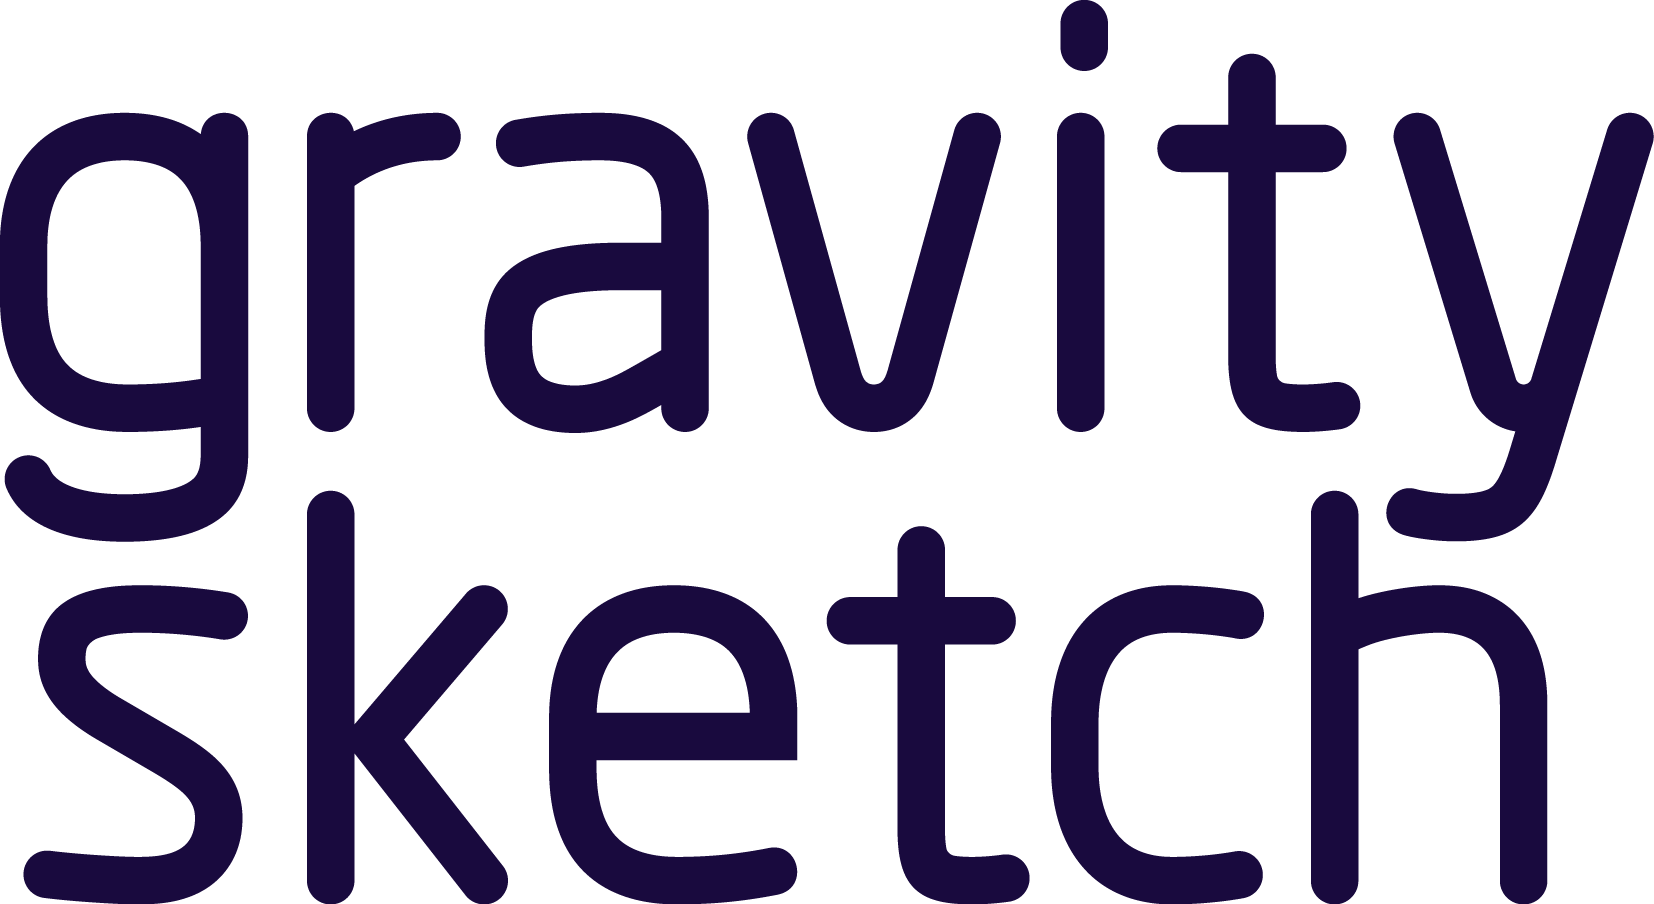 GRAVITY-SKETCH-TEXT.png